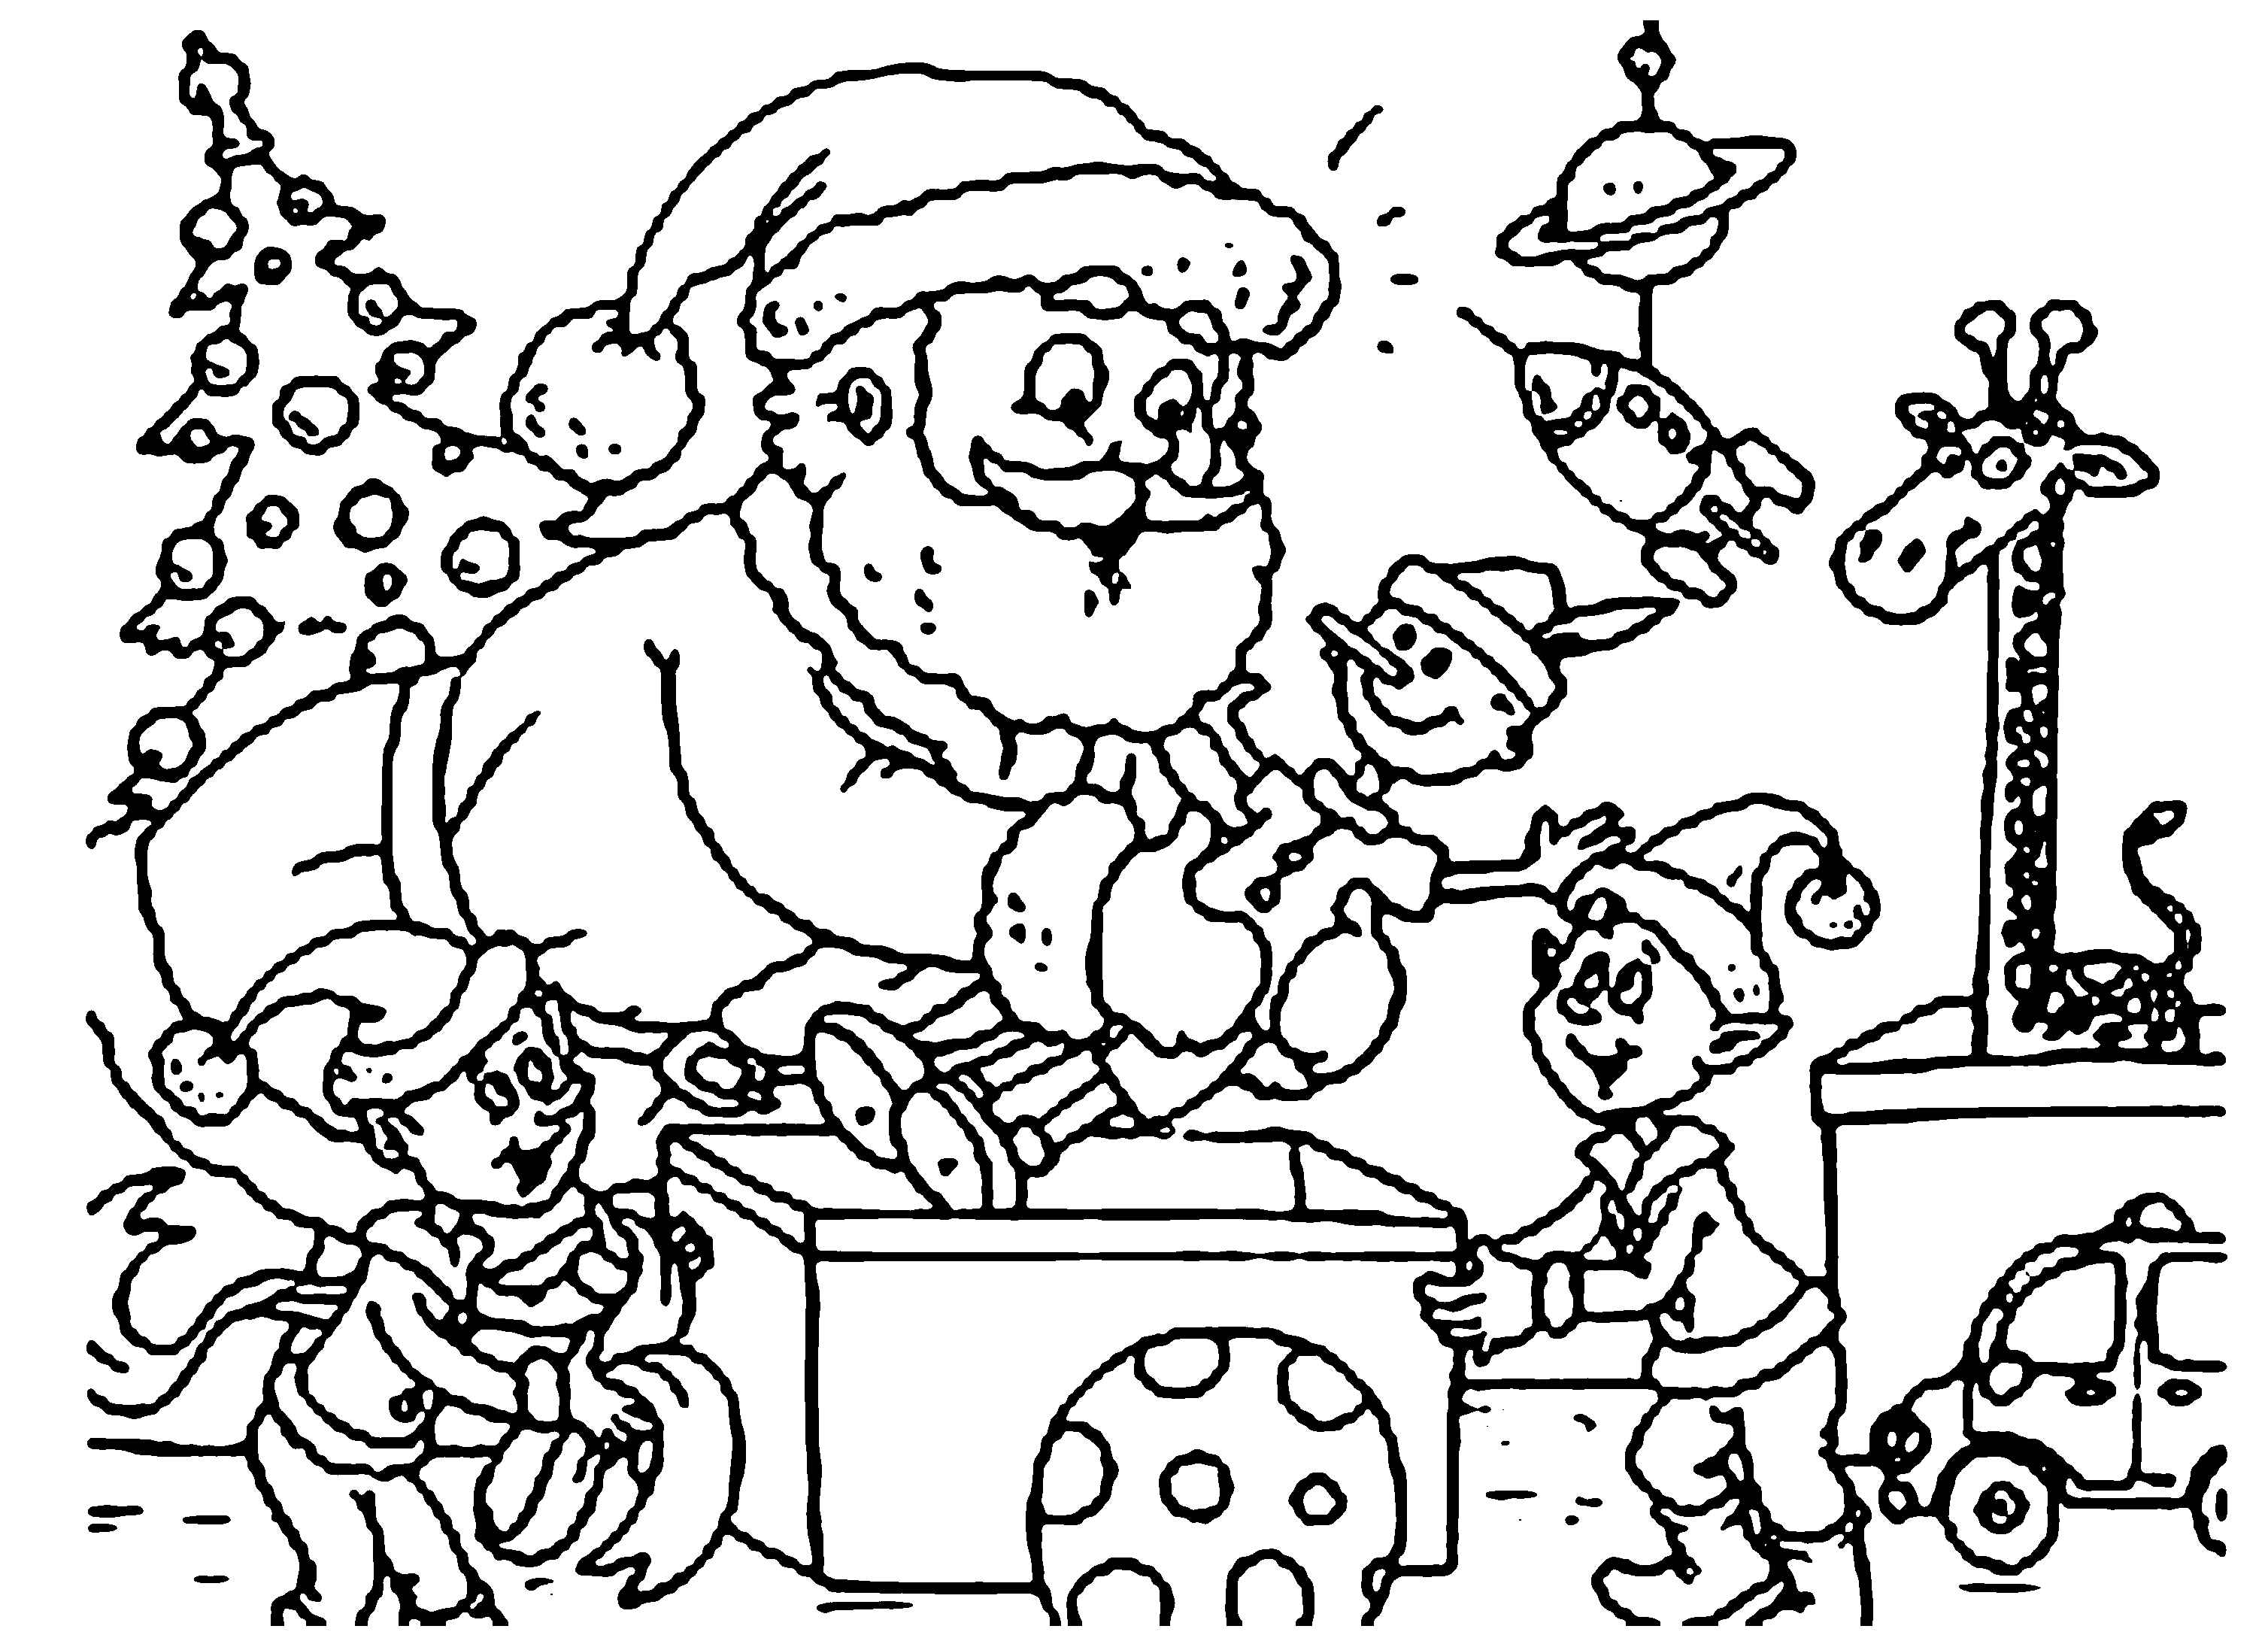 Christmas Elf Coloring Pages Coloring Anime Girl Elf Coloring Pages Printable Christmas Free